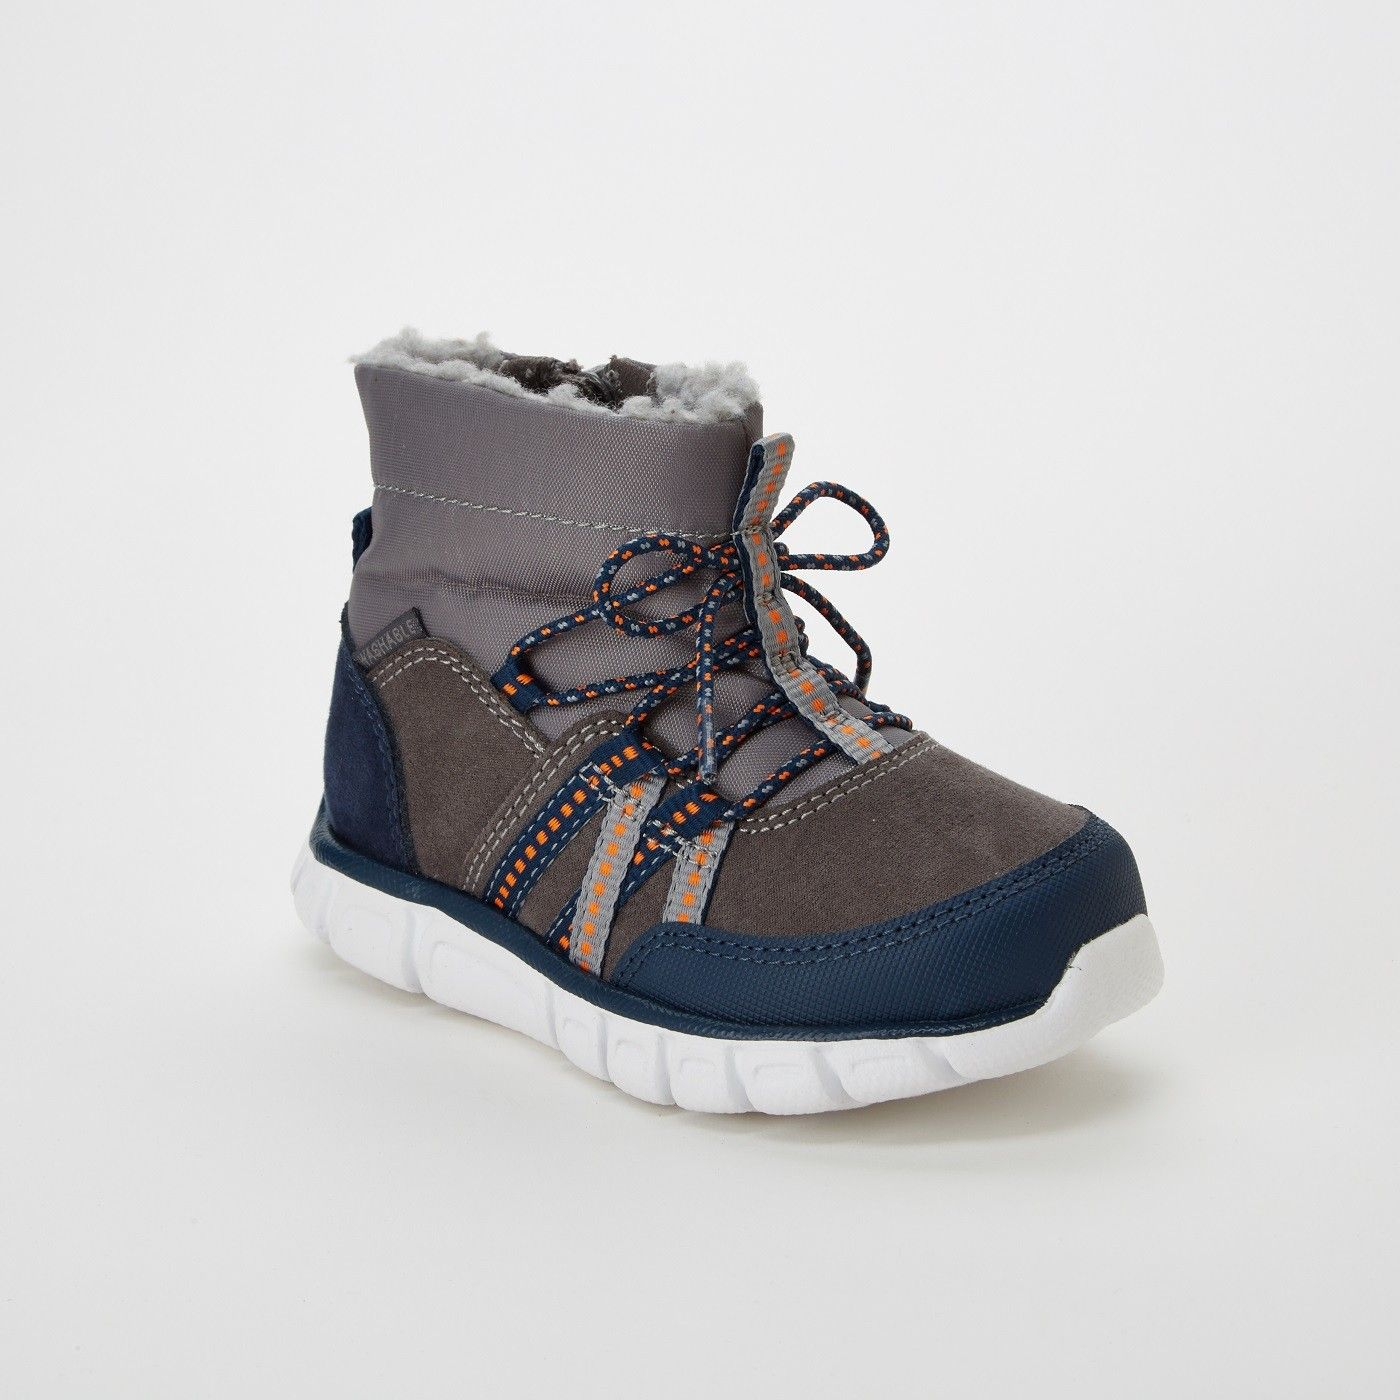 Toddler Boys Surprize By Stride Rite Mike Winter Fashion Boots Gray Image 1 Of 3 Winter Fashion Boots Toddler Boots Stride Rite Shoes